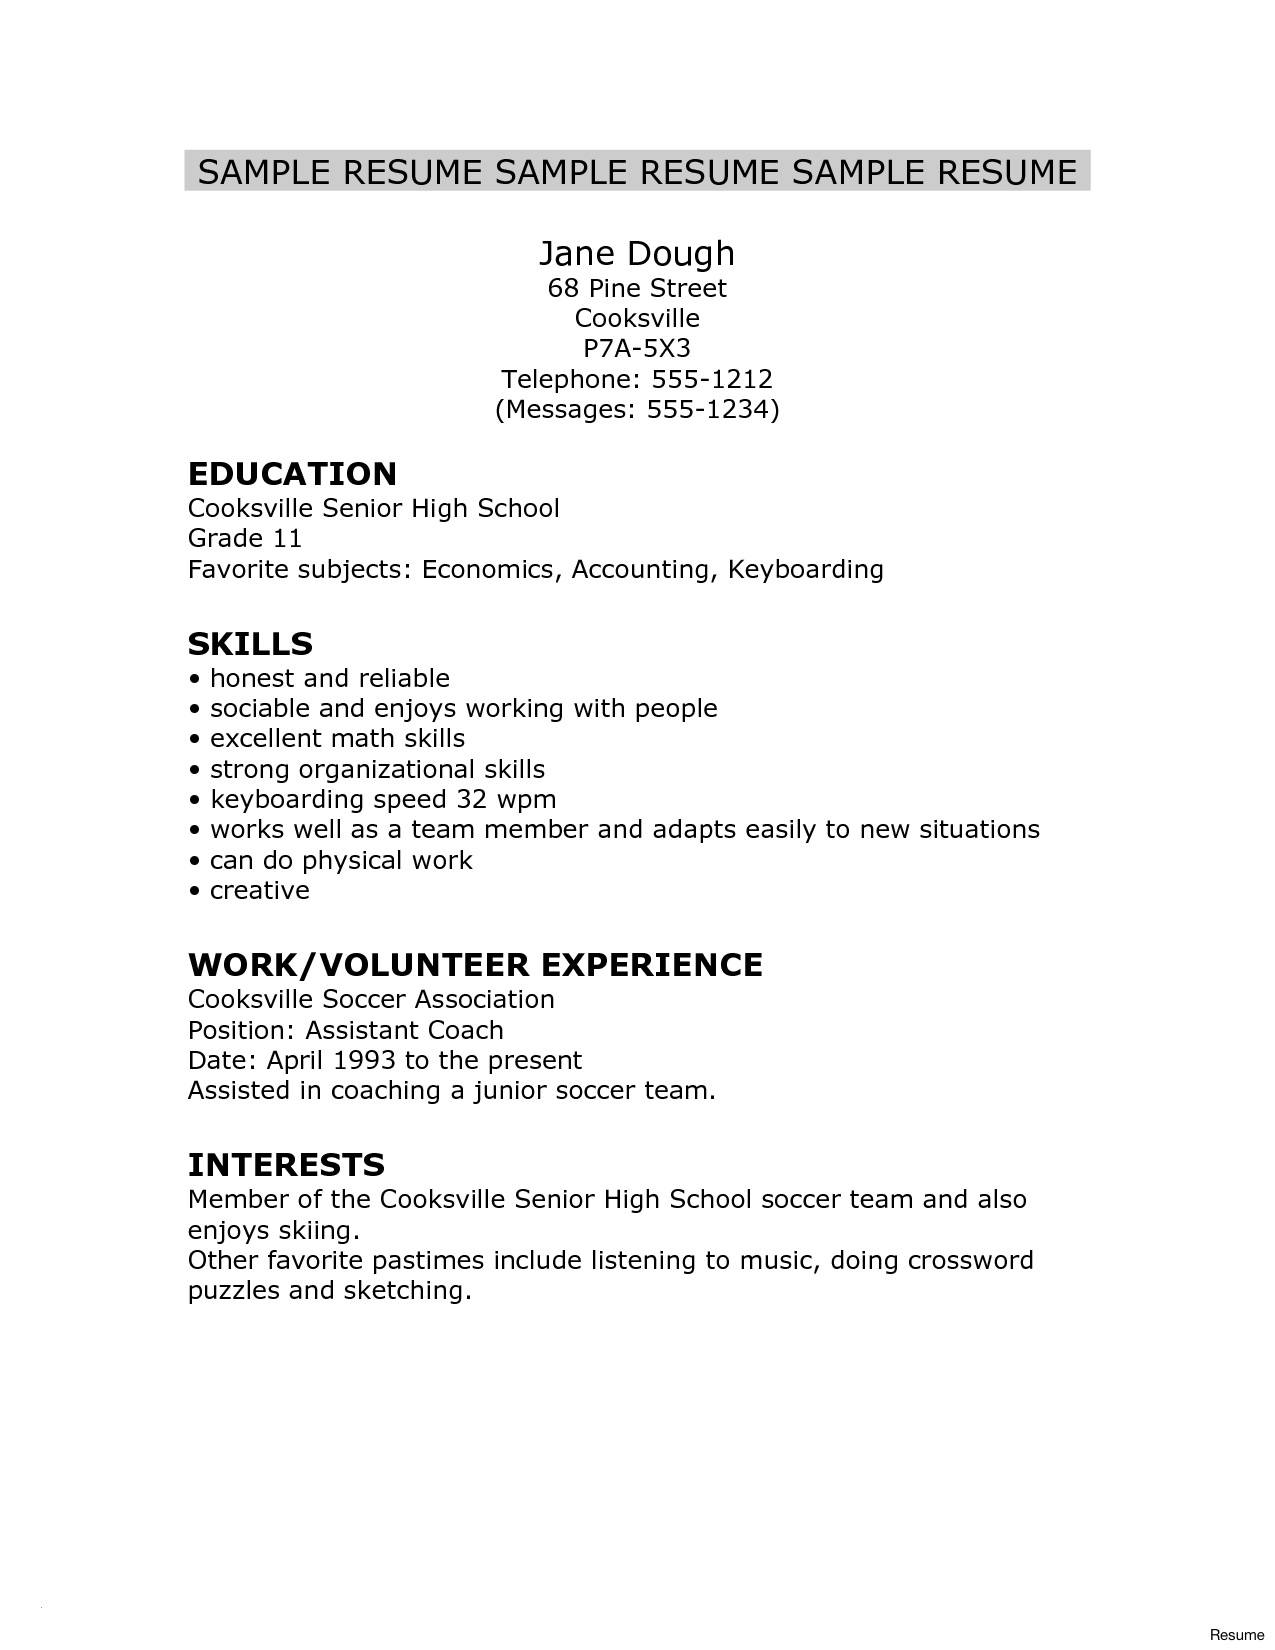 Soccer Resume Template for College - Resume for High School Students with No Experience Template Awesome